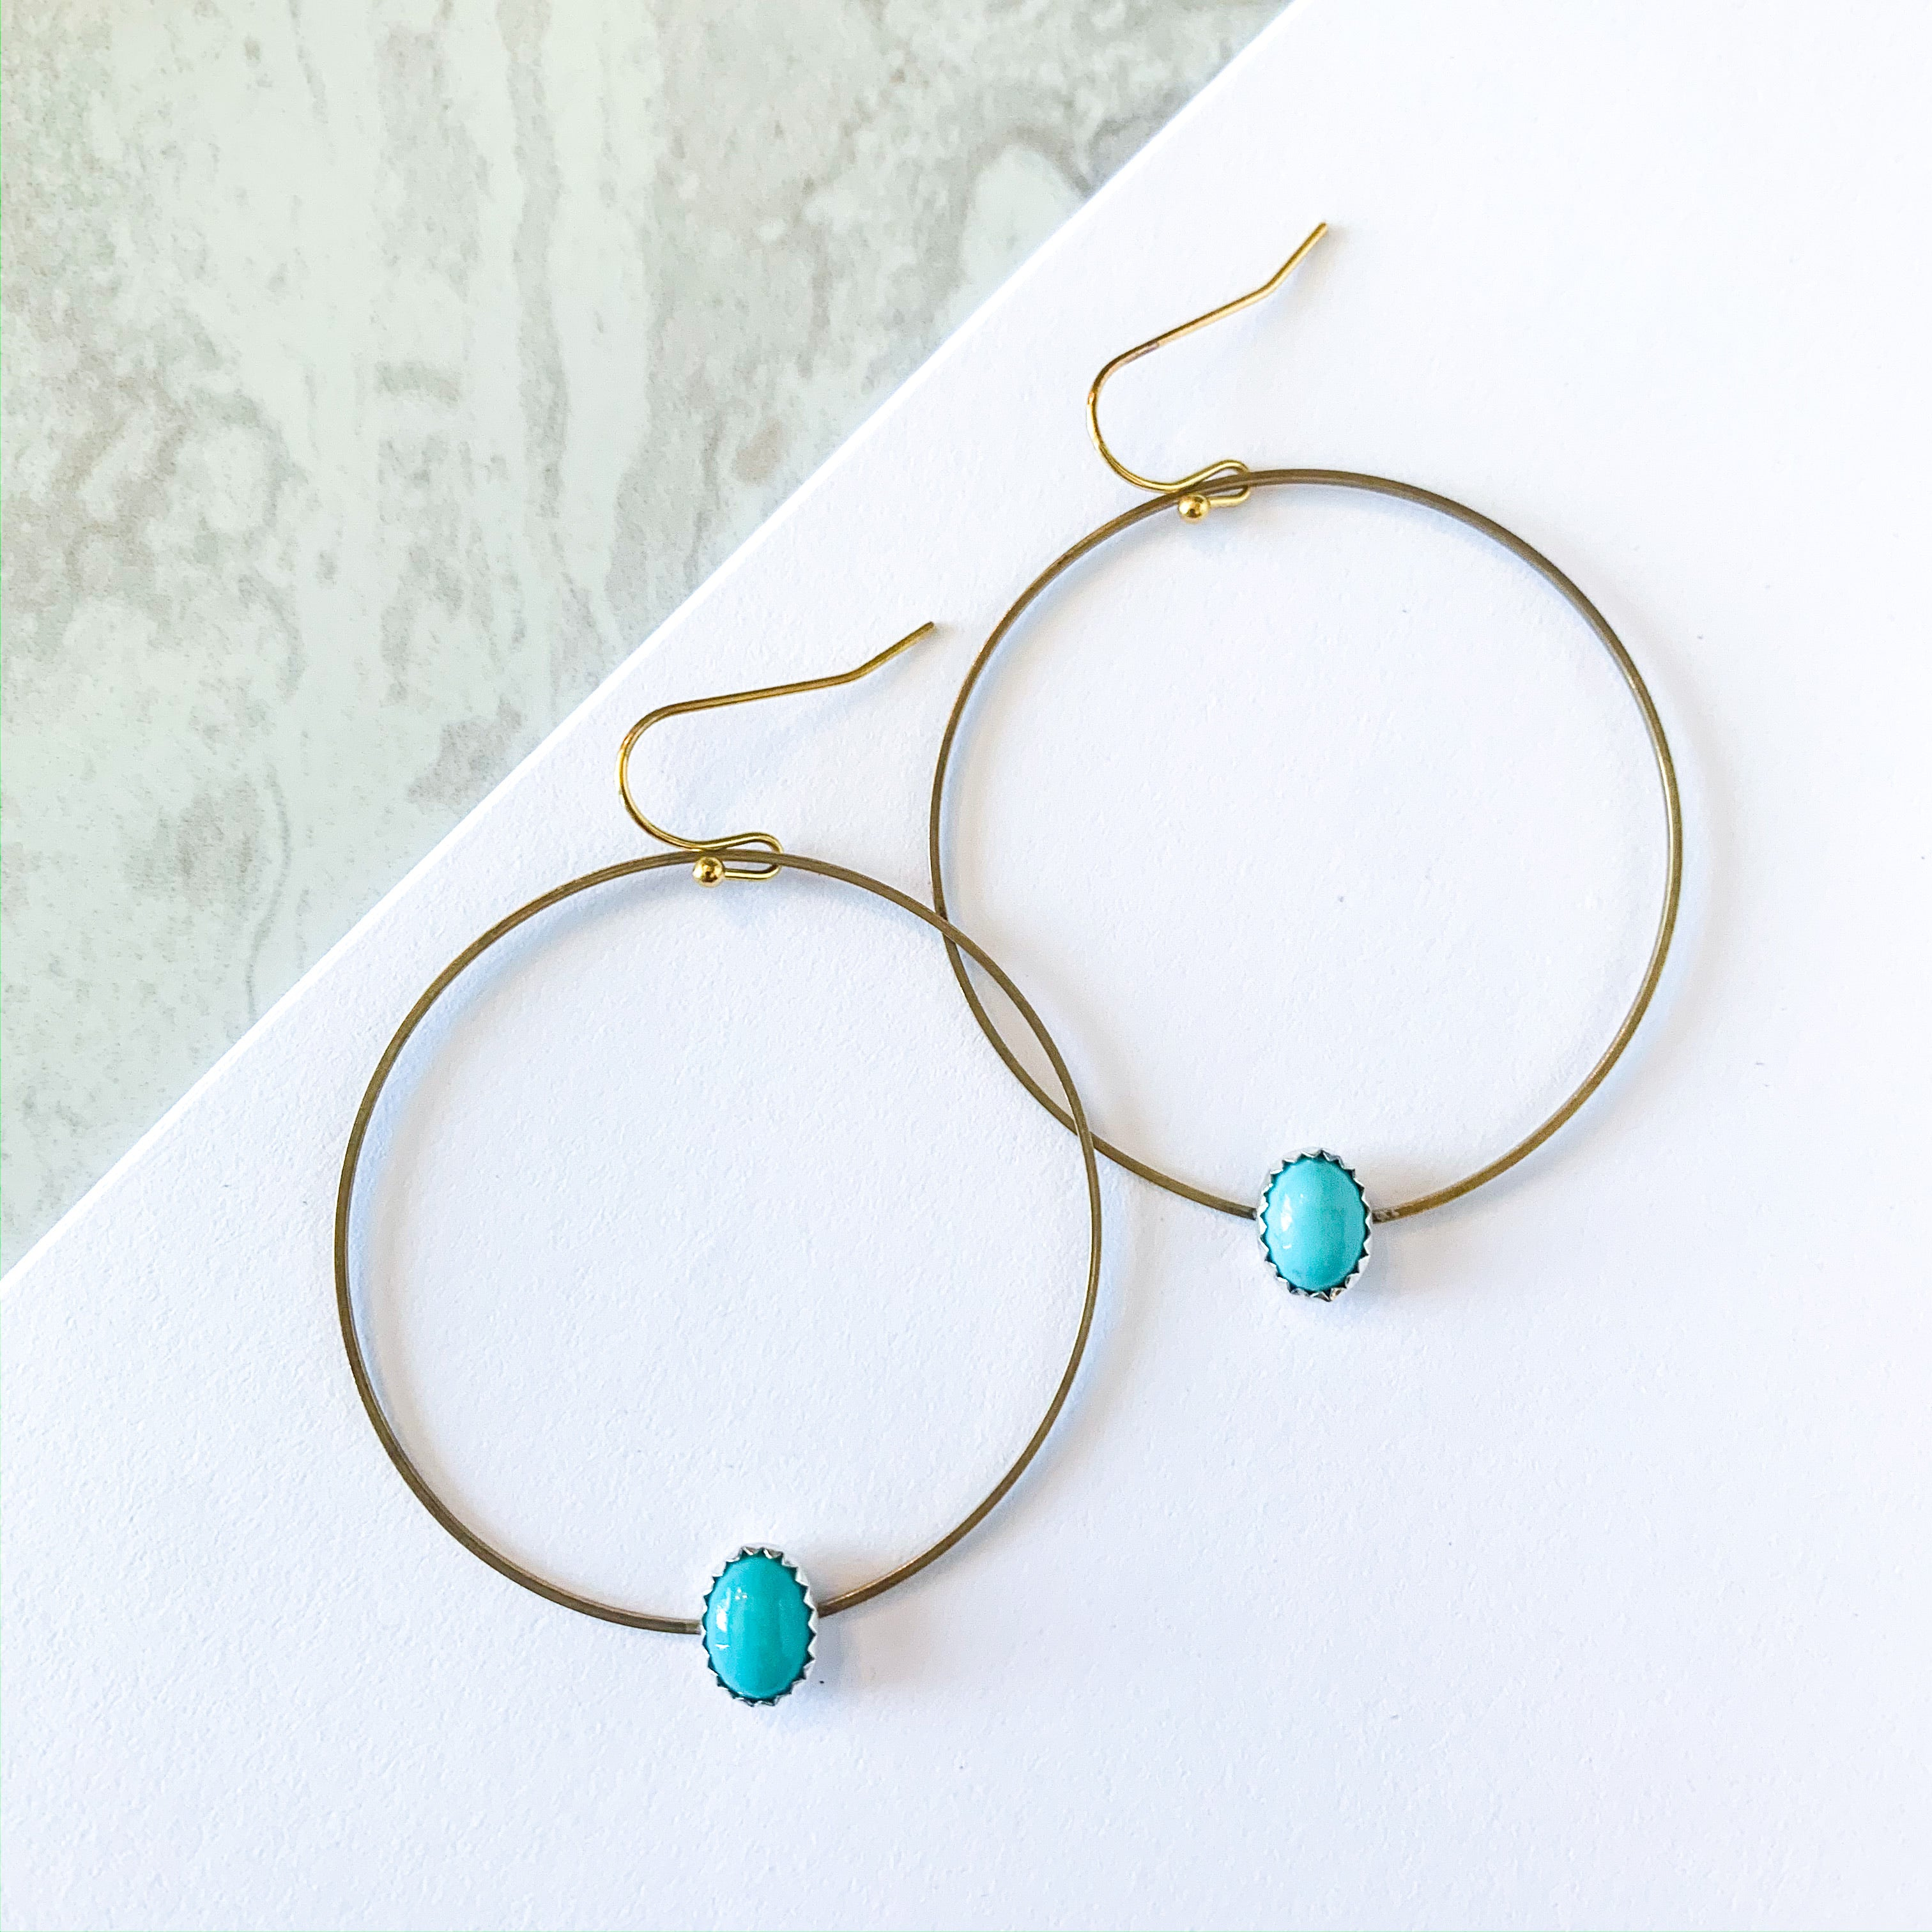 Turquoise & Brass Hoops